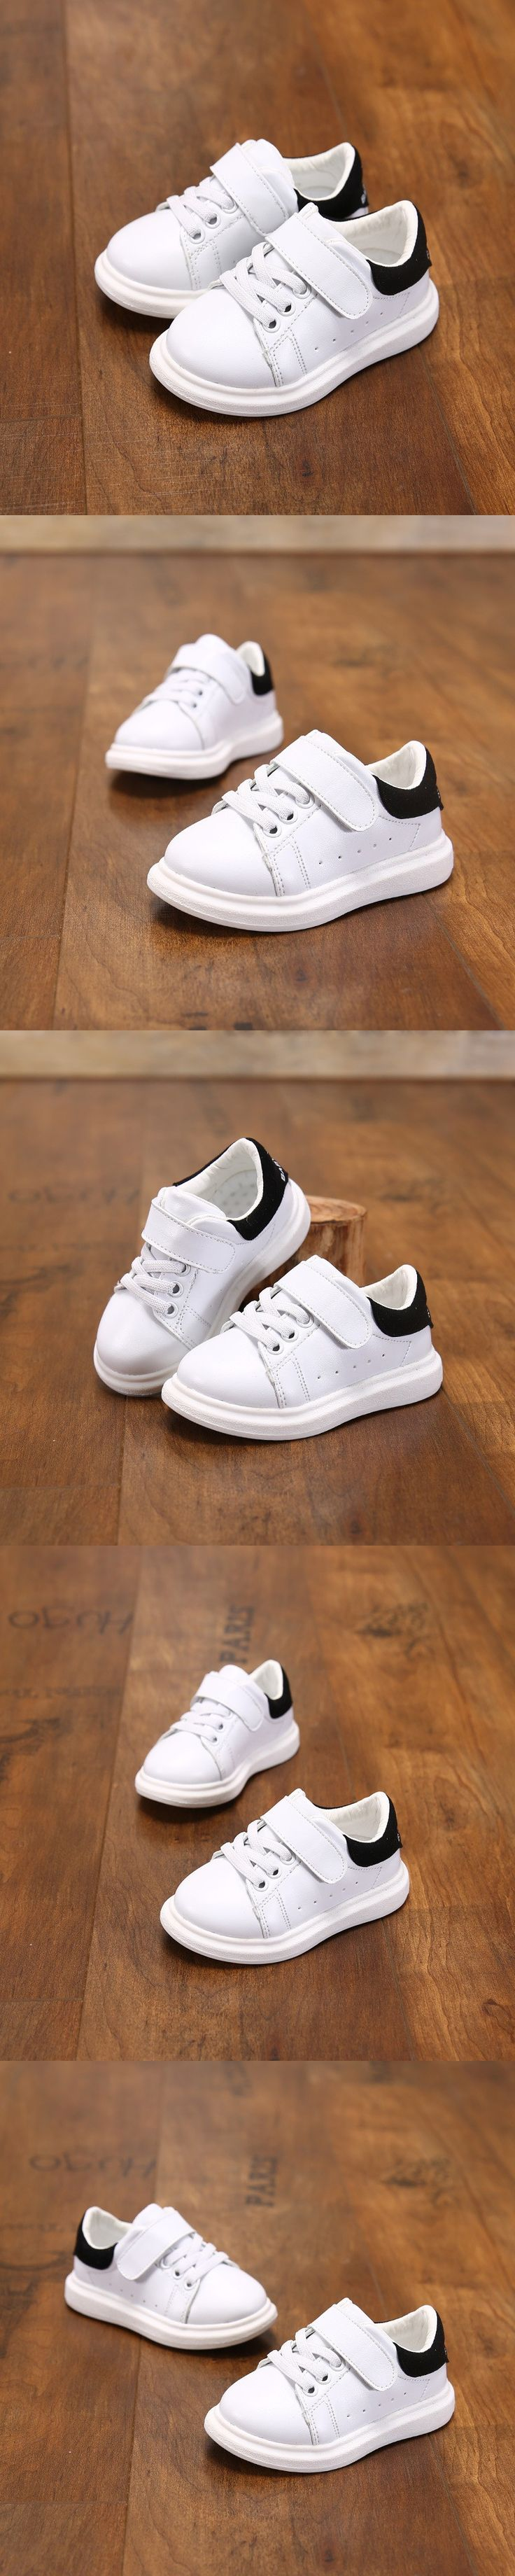 2016 Fashion Casual Baby Shoes Lace Up Hollow White Summer Girls Sneakers Kids Breathable Children Shoes Chaussure Enfant Garcon